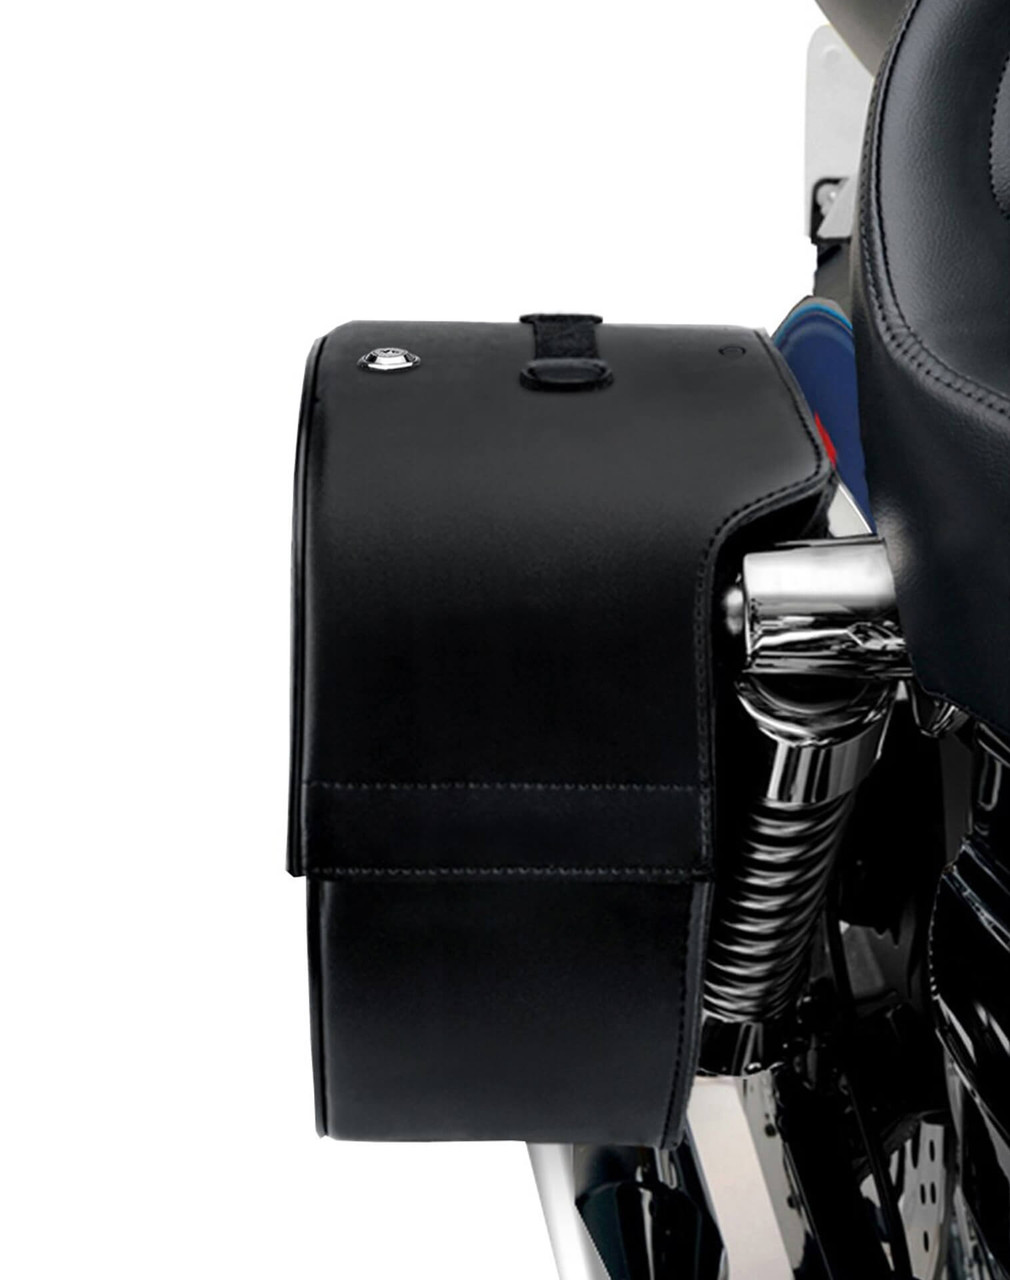 Viking Charger Shock Cutout Large Motorcycle Saddlebags For Harley Sportster 1200 Nightster XL1200N Shock Cutout View